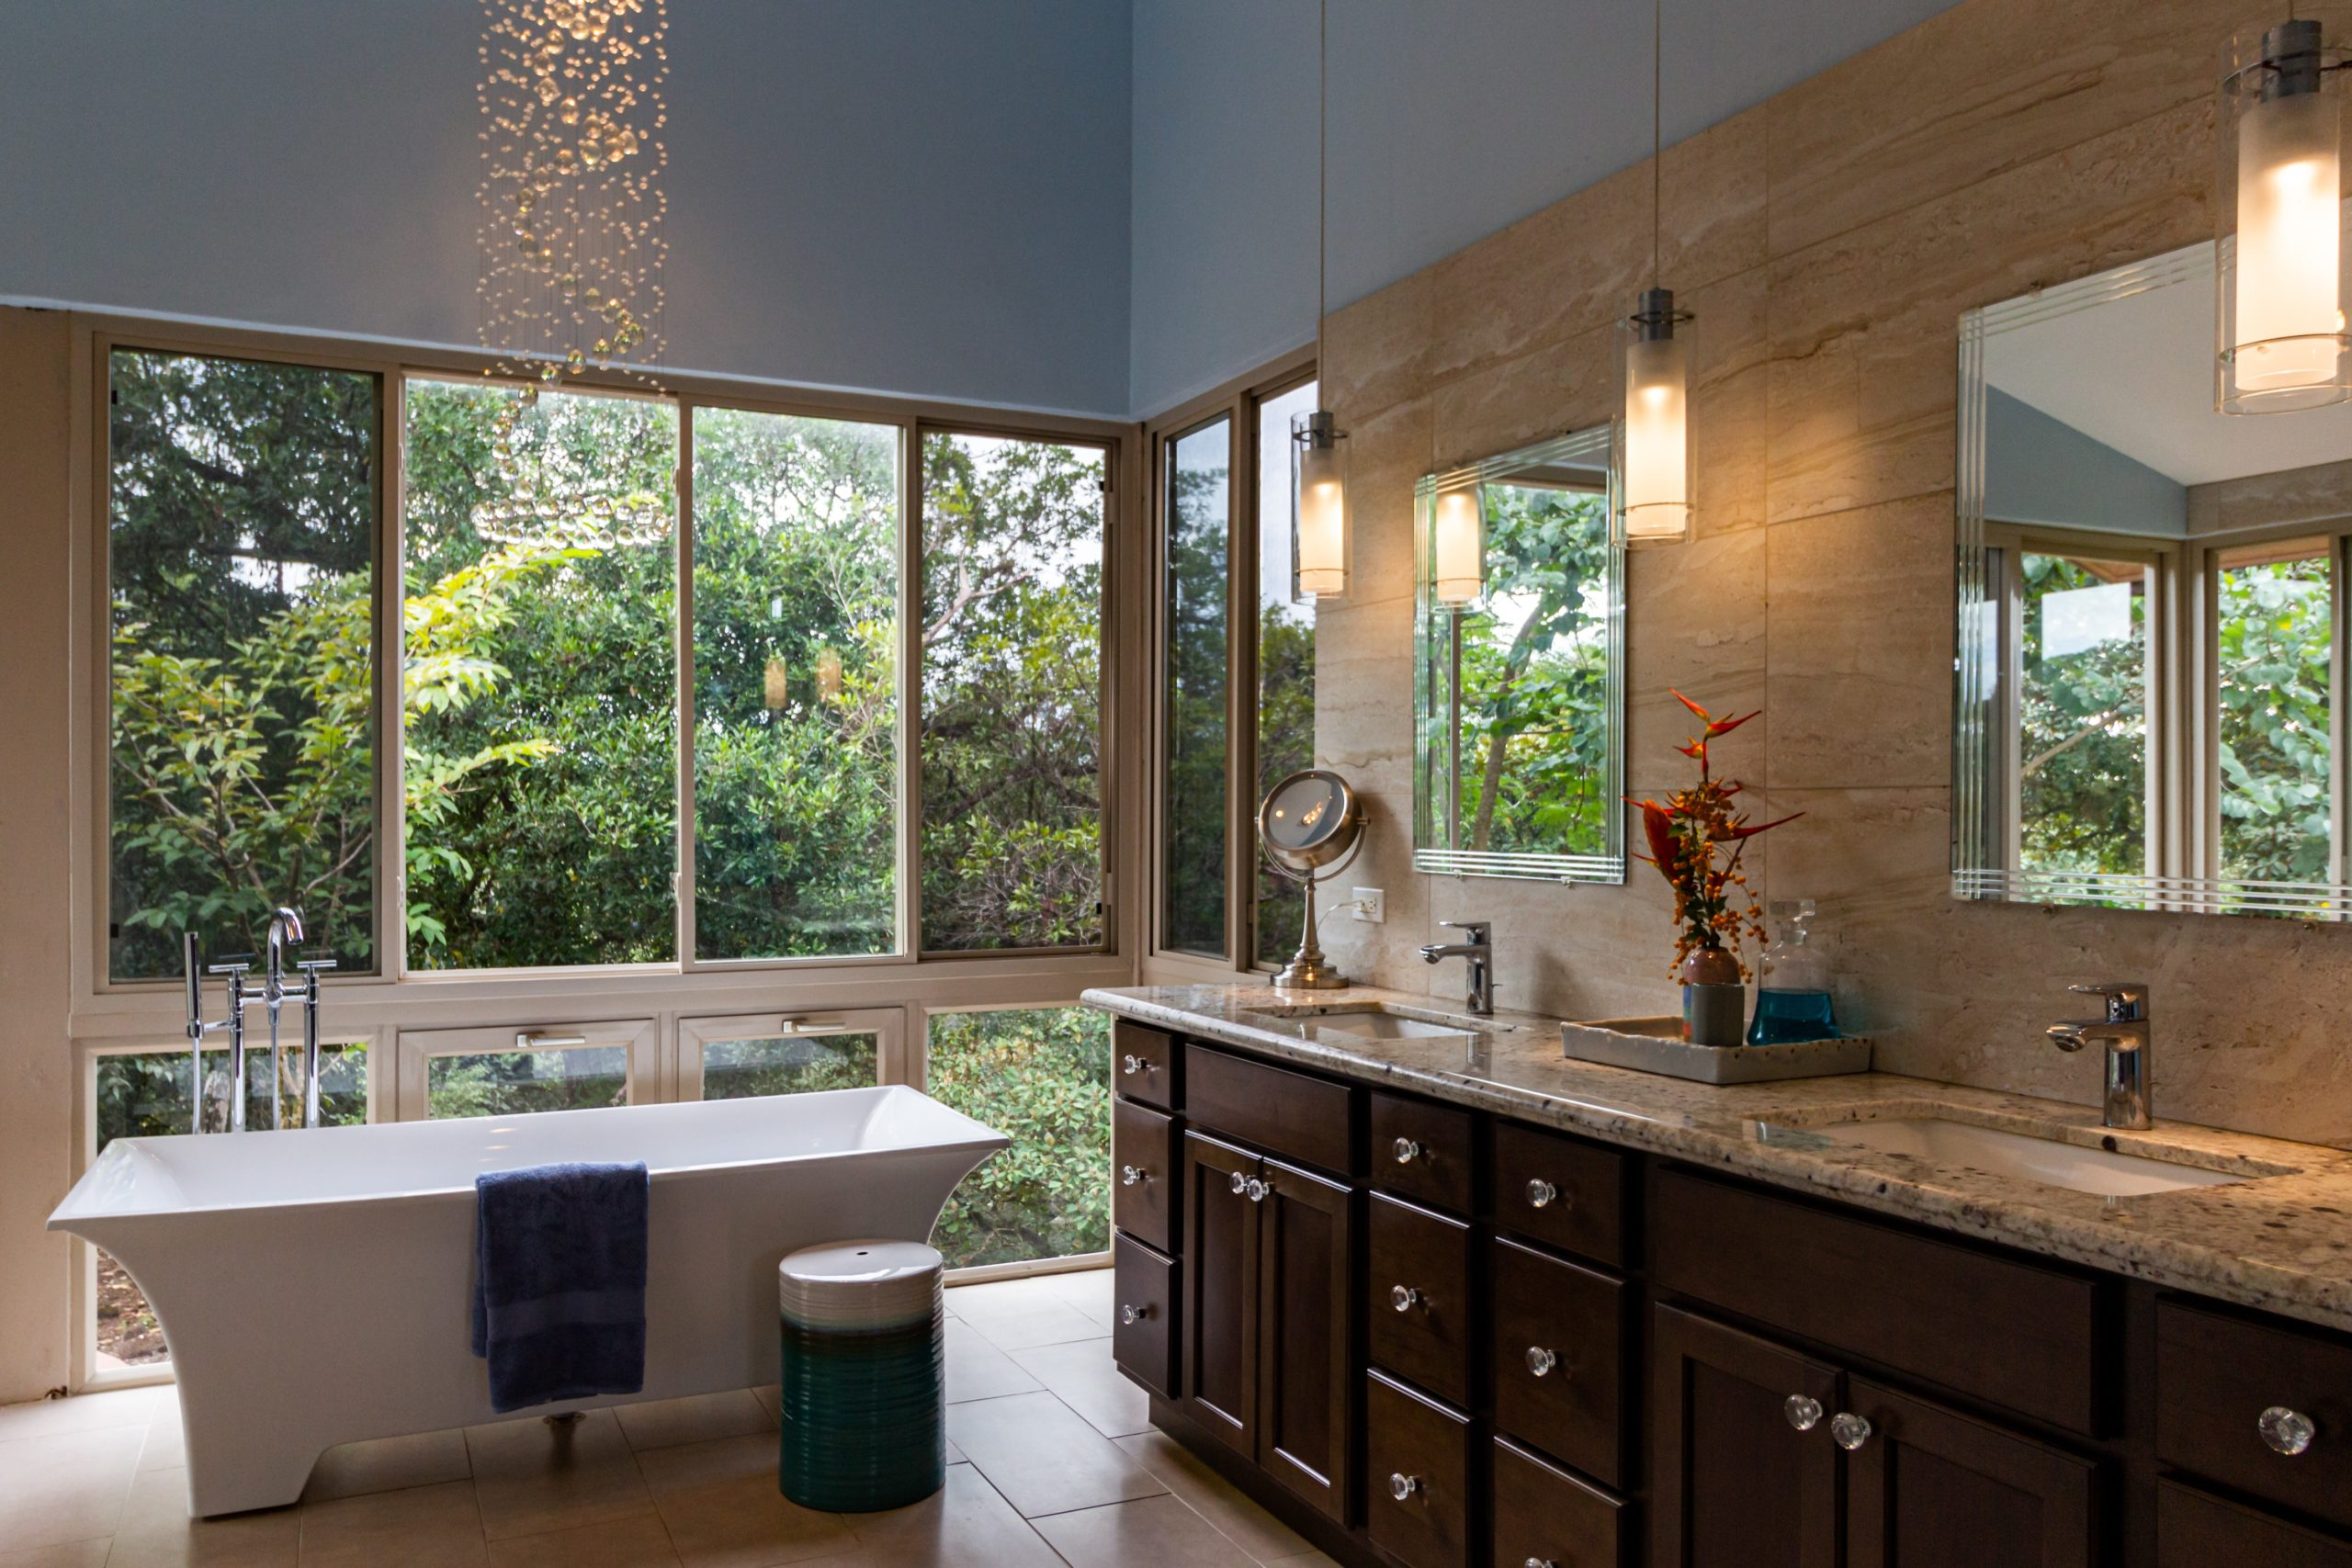 bathroom done right by dirt connections construction team